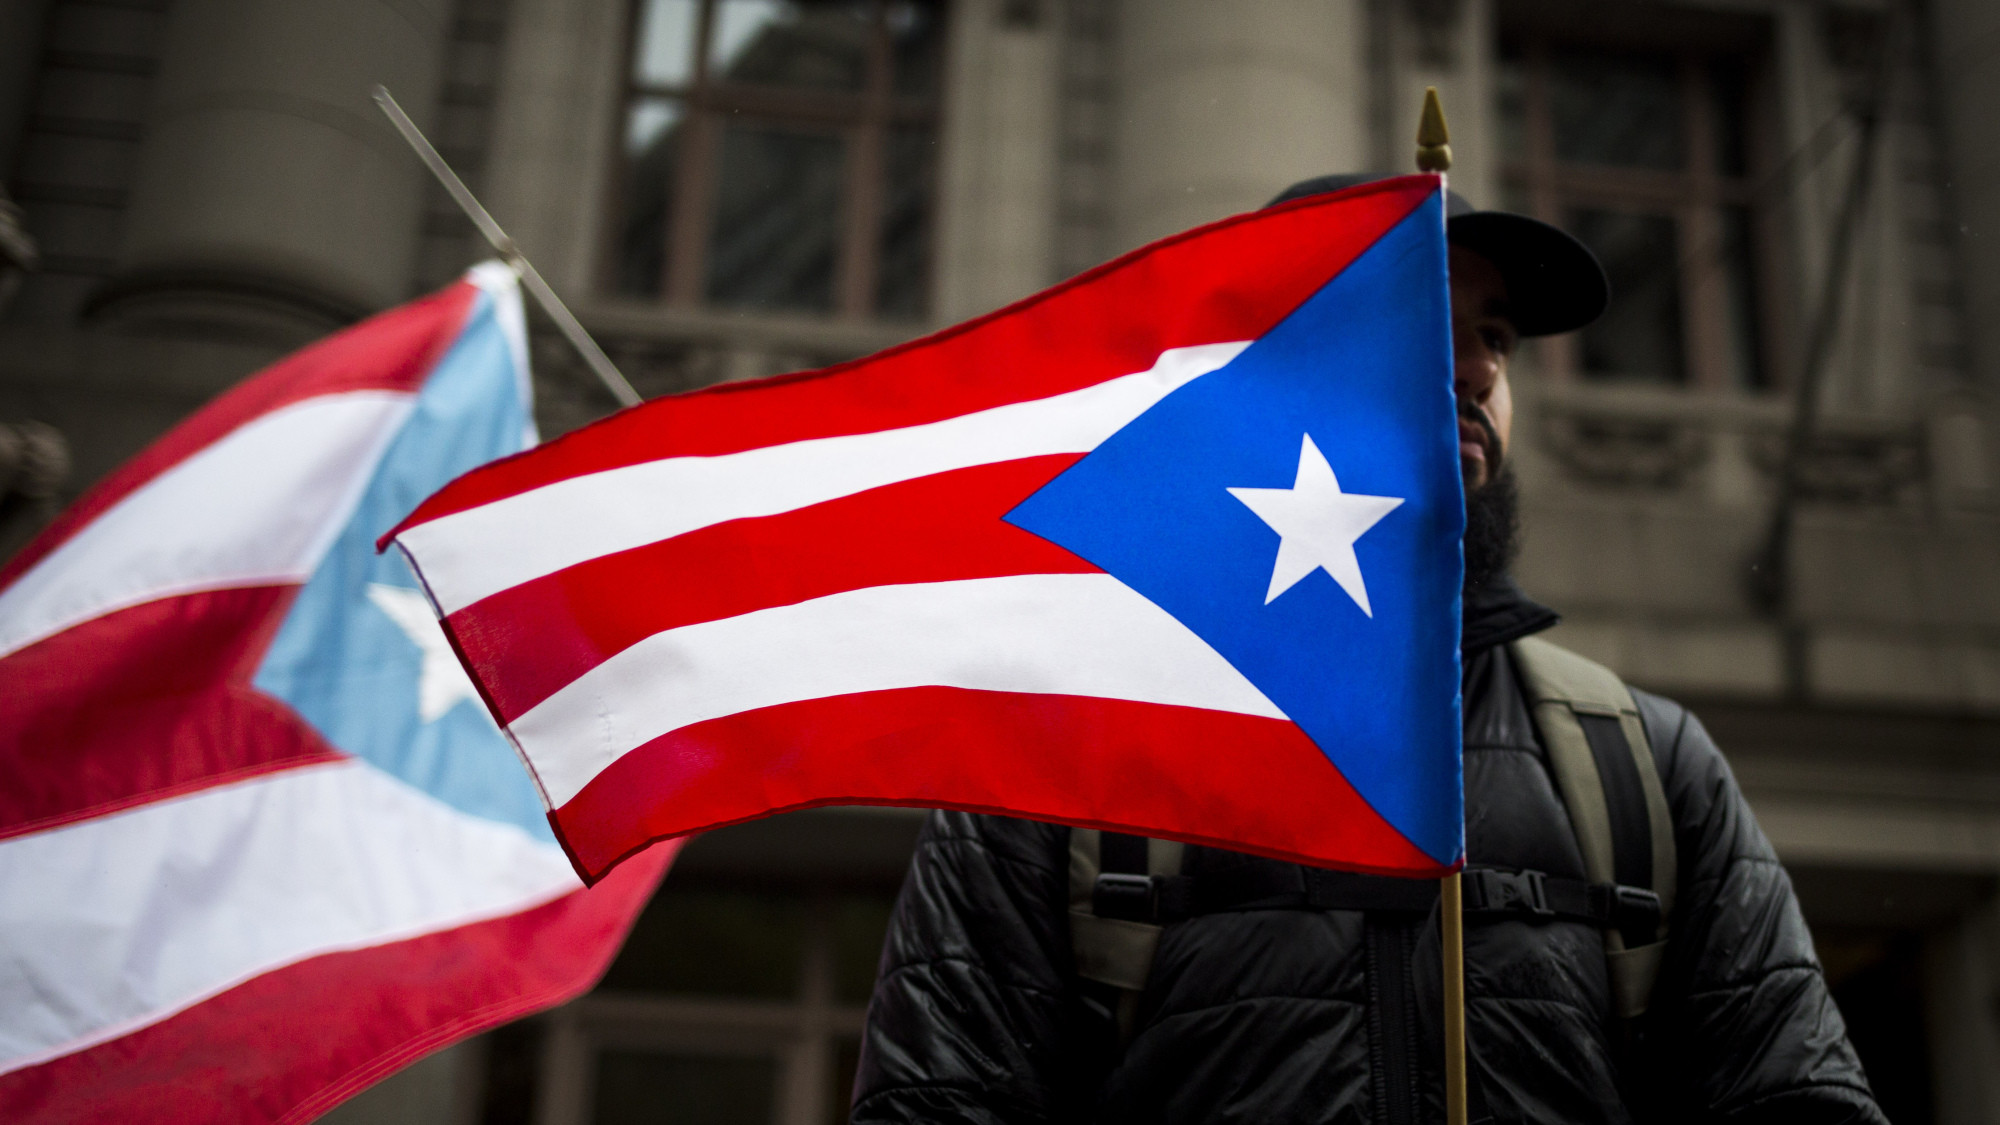 Puerto Rican Flag Background 43 Images